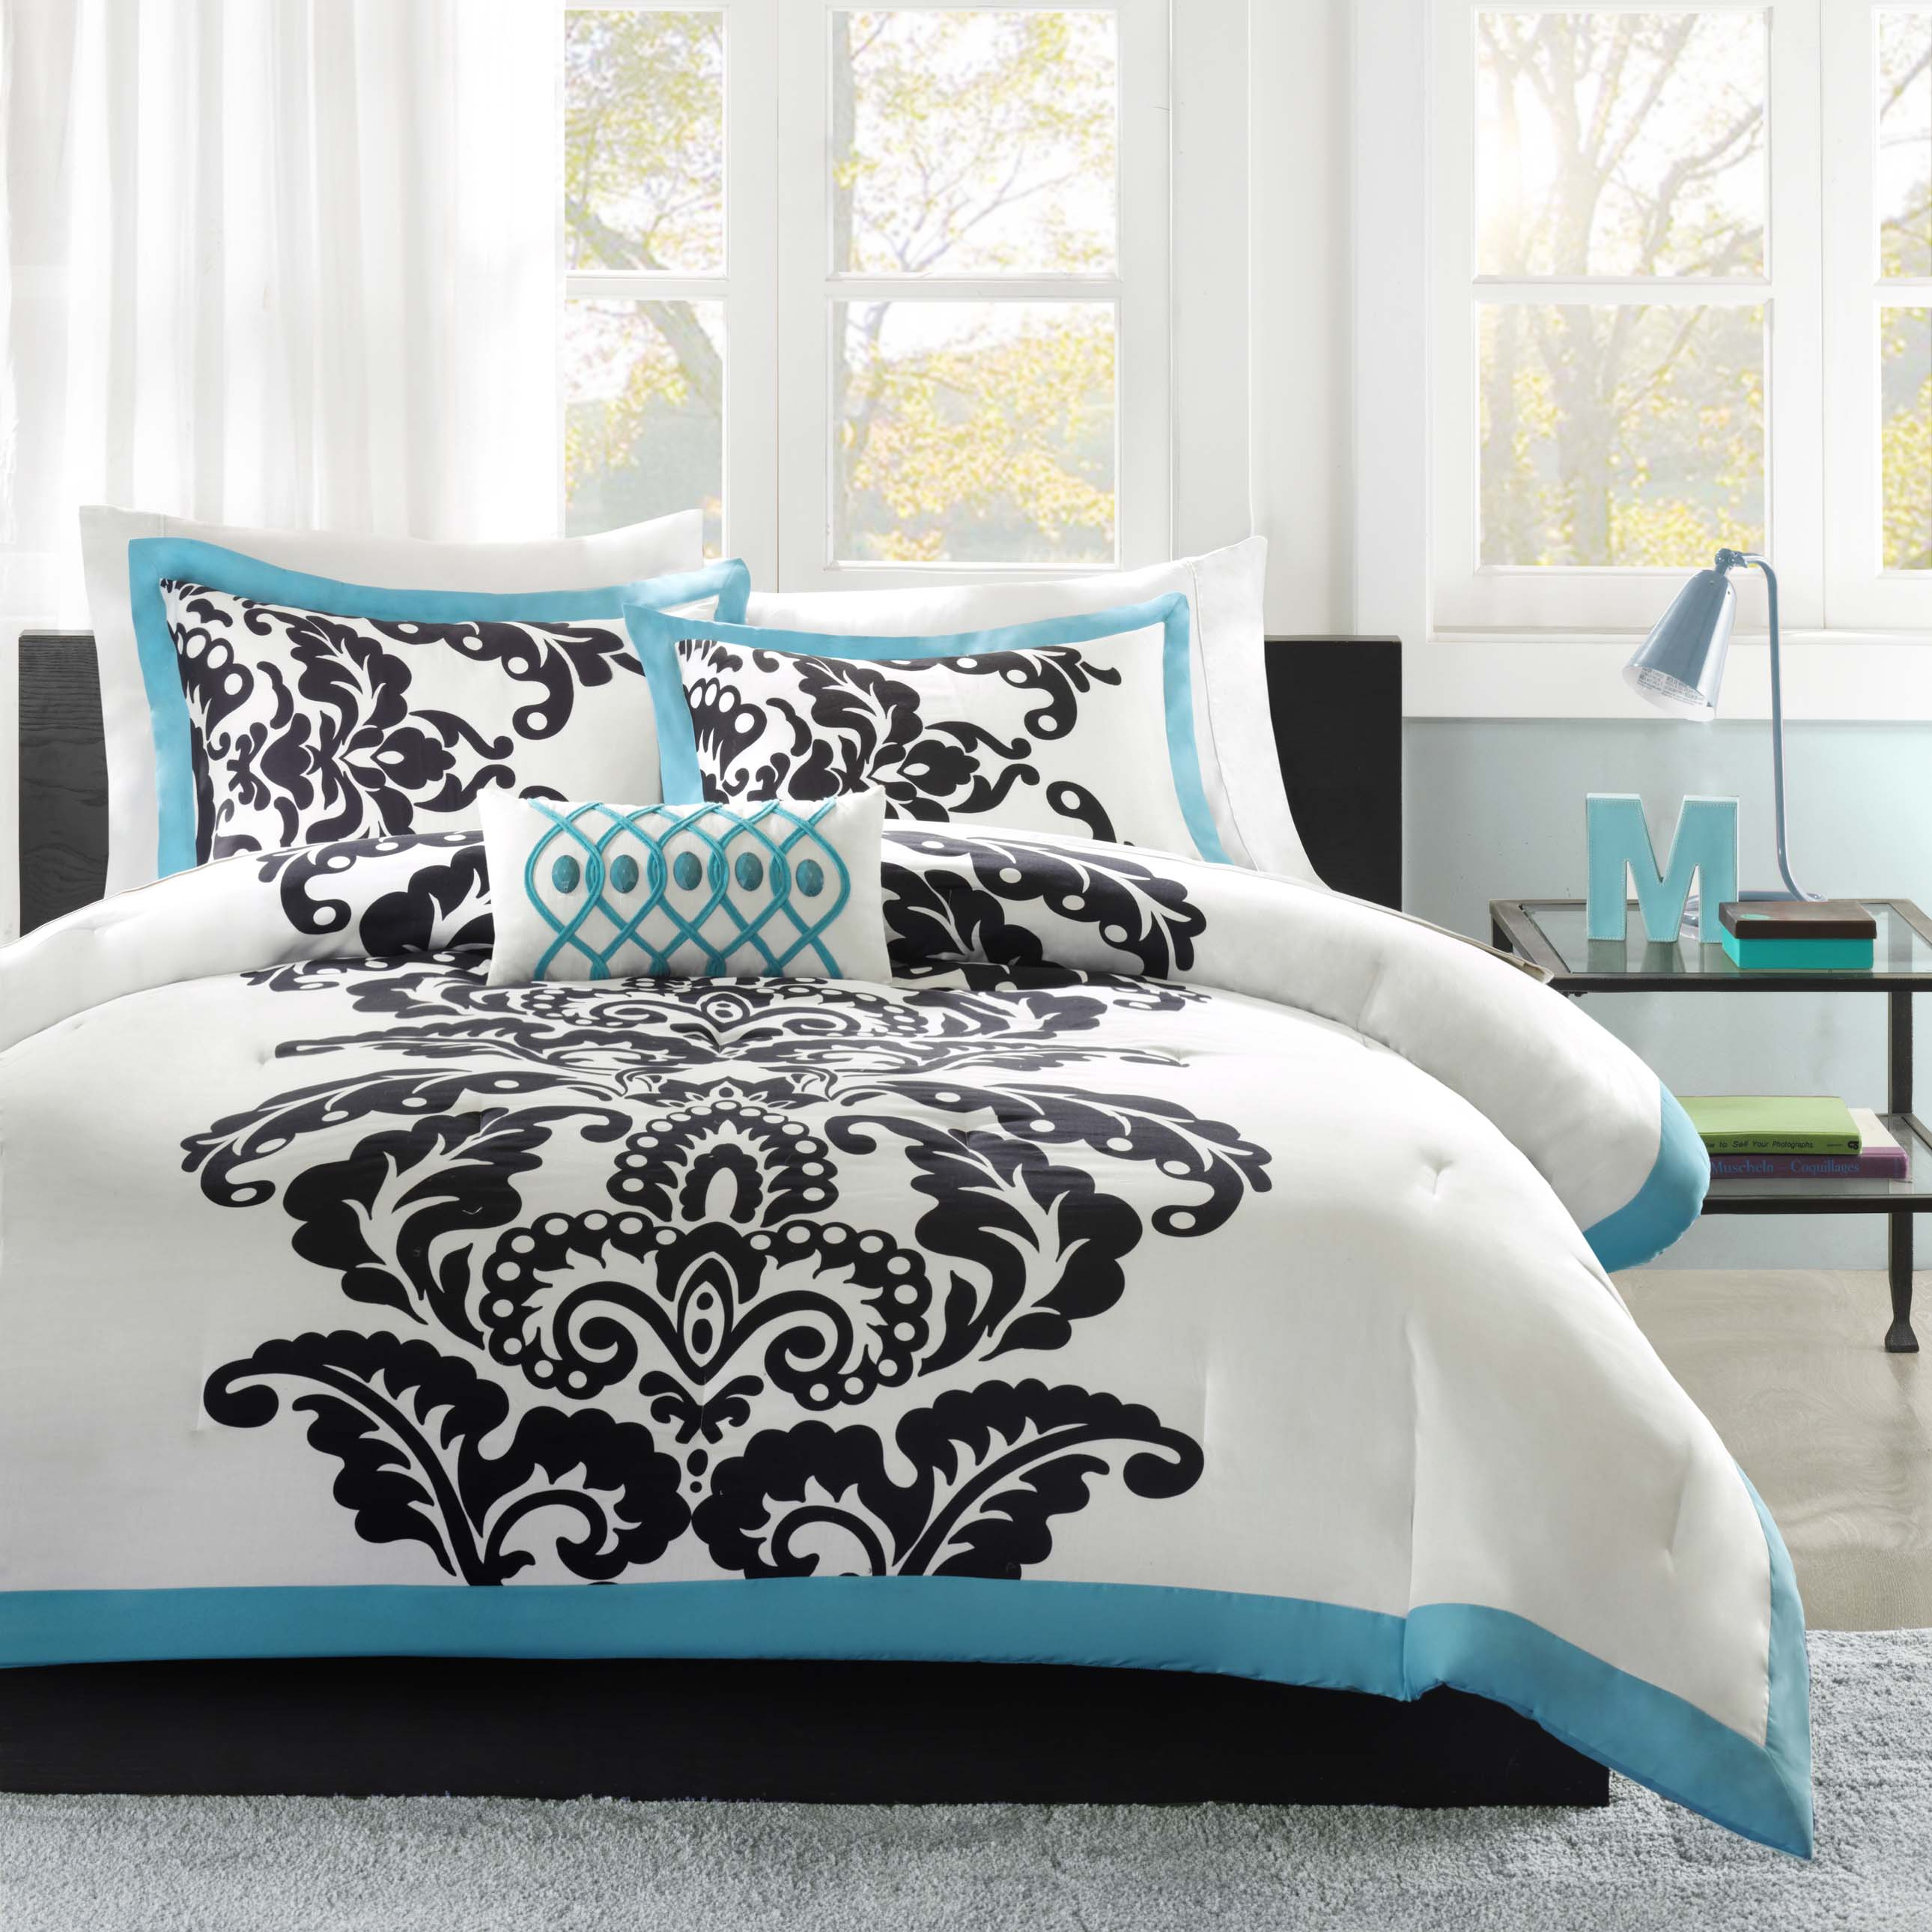 king doona duvets comforter full modern class single quilt cover duvet flair covers double beds white size comforters for sets and cotton top queen down black twin set teal